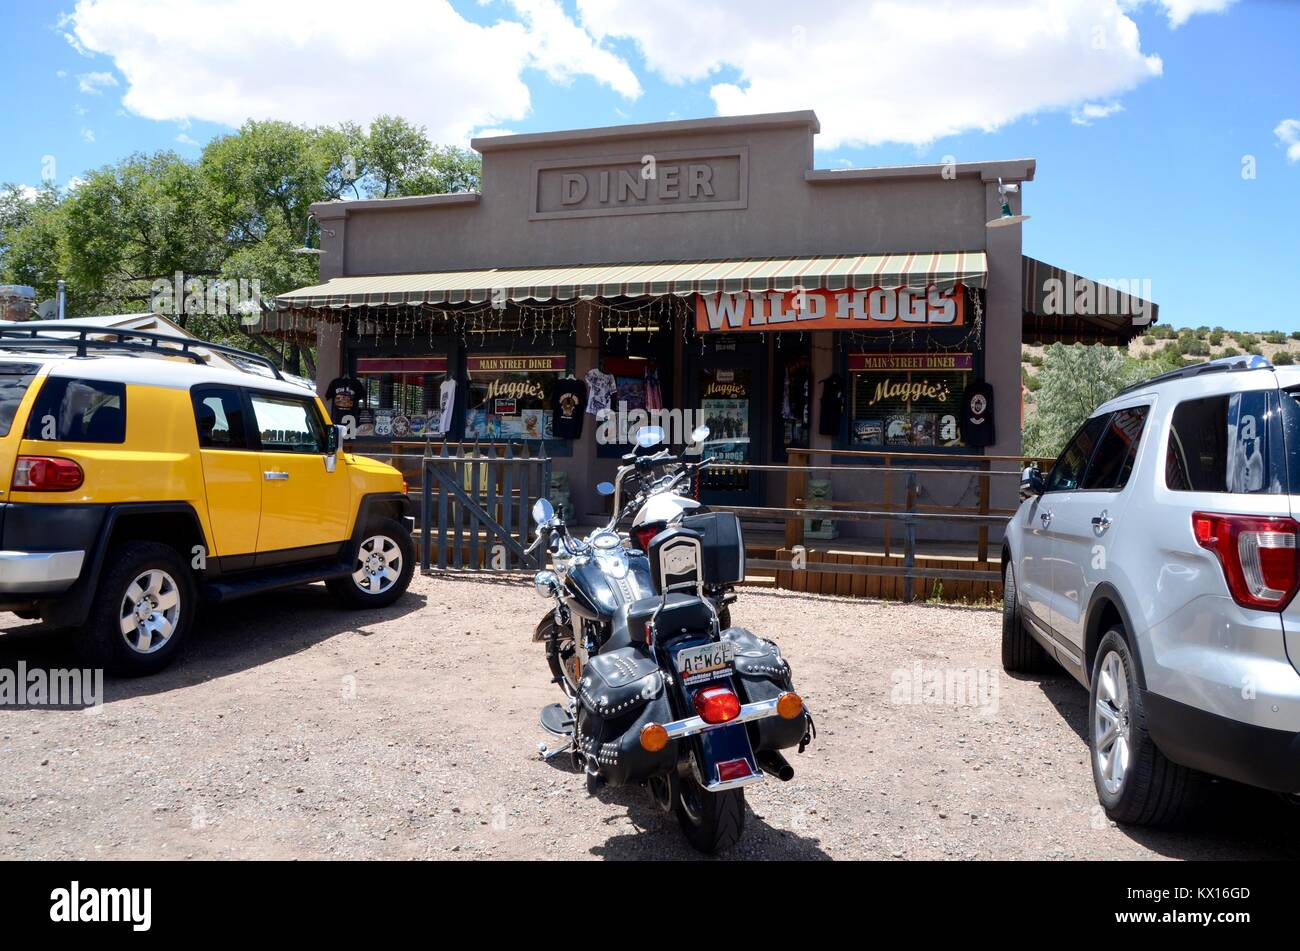 maggies diner setting for wild hogs movie in madrid new mexico - Stock Image